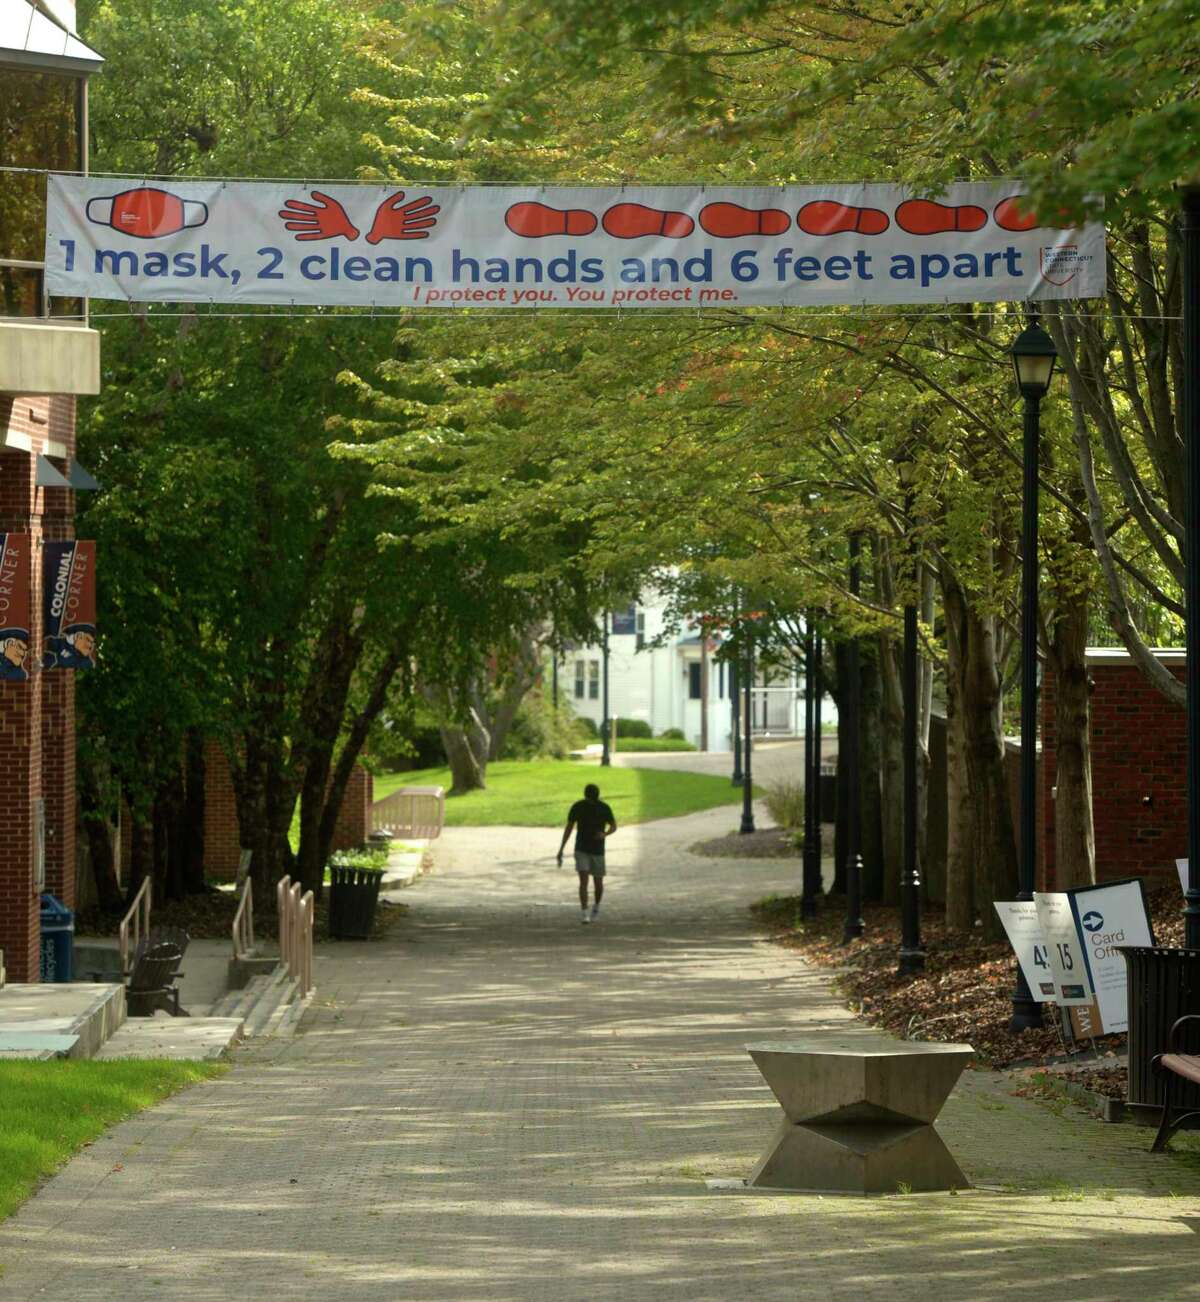 In-person classes started on Monday morning at Western Connecticut State University in Danbury, Conn, with students moving into the dorms over the weekend. September 14, 2020.